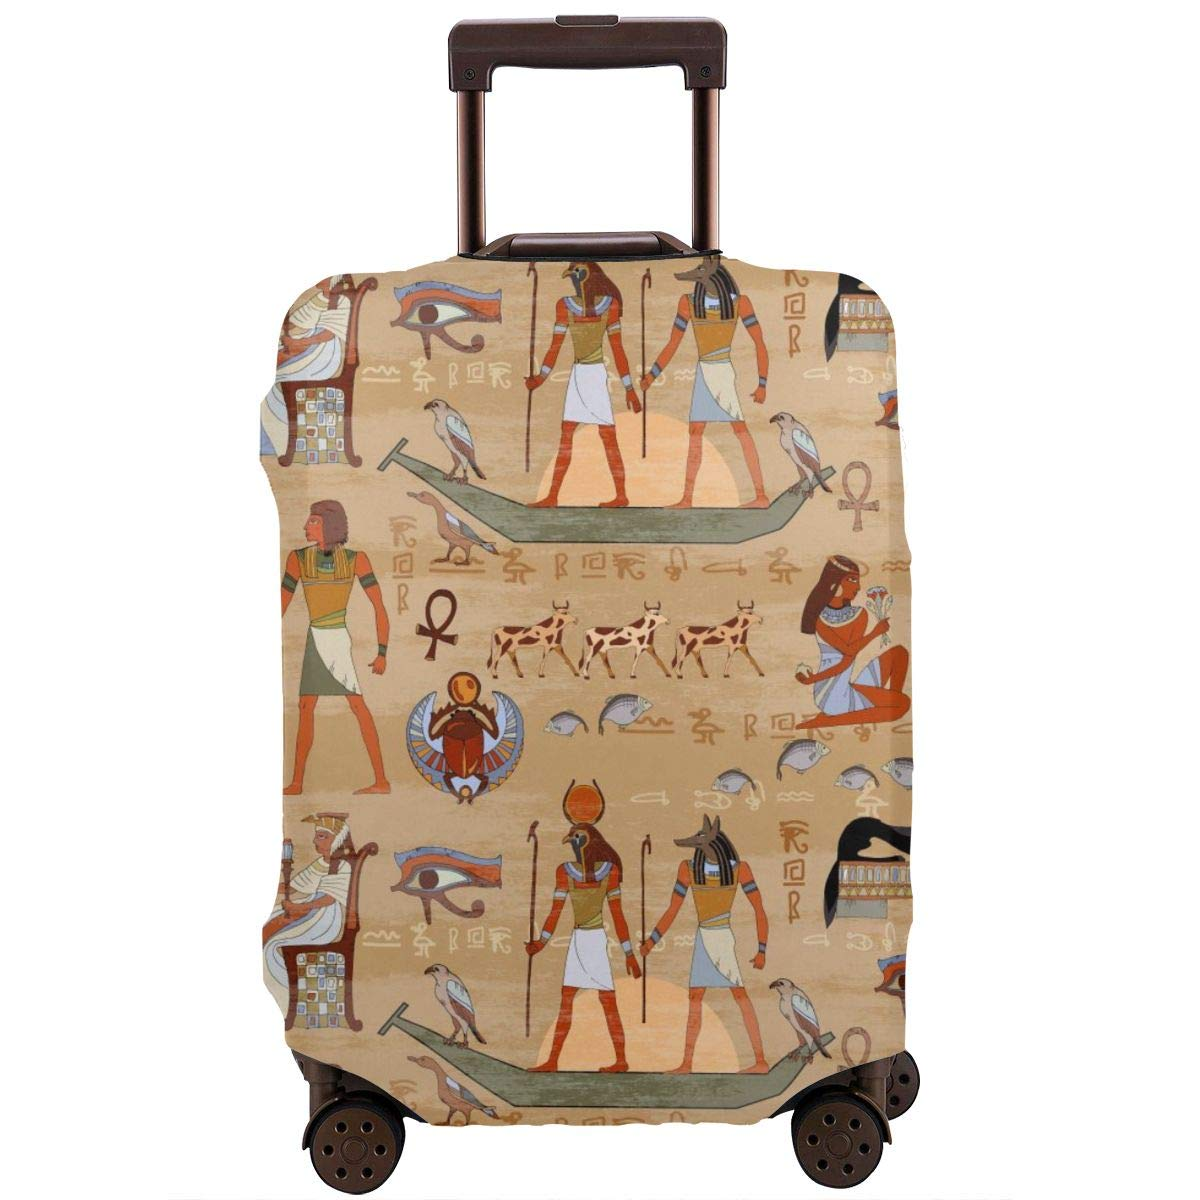 Egyptian Hieroglyphs And Pharaohs Travel Luggage Cover Suitcase Protector Washable Zipper Baggage Cover